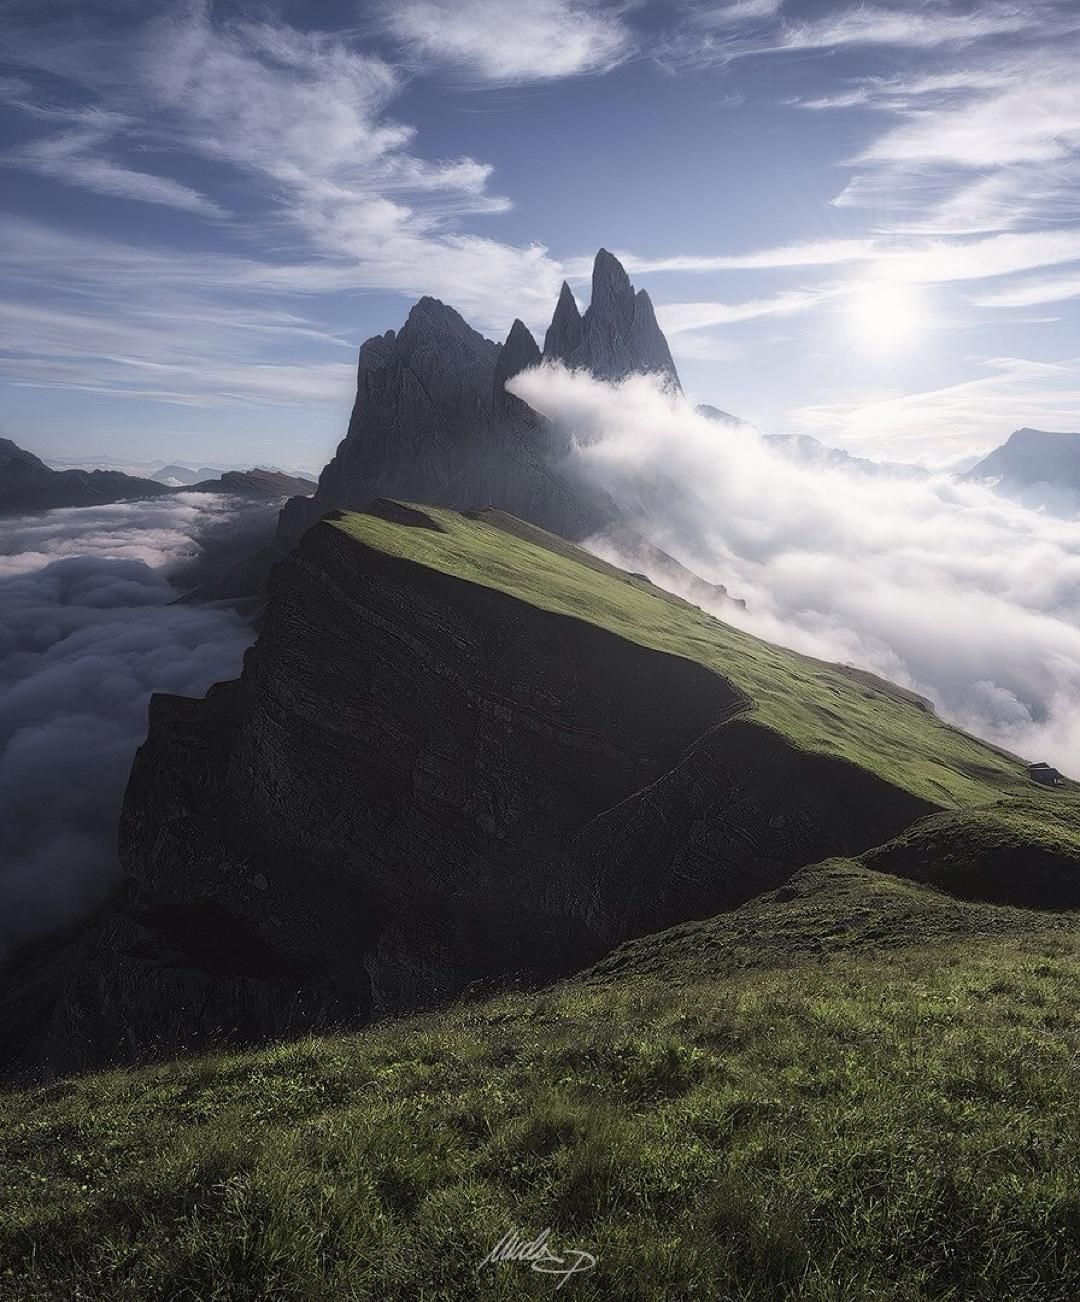 Fabulous Mountainscapes of The Dolomites by Nicola Pirondini | Cool landscapes, Nature photos, Scenery